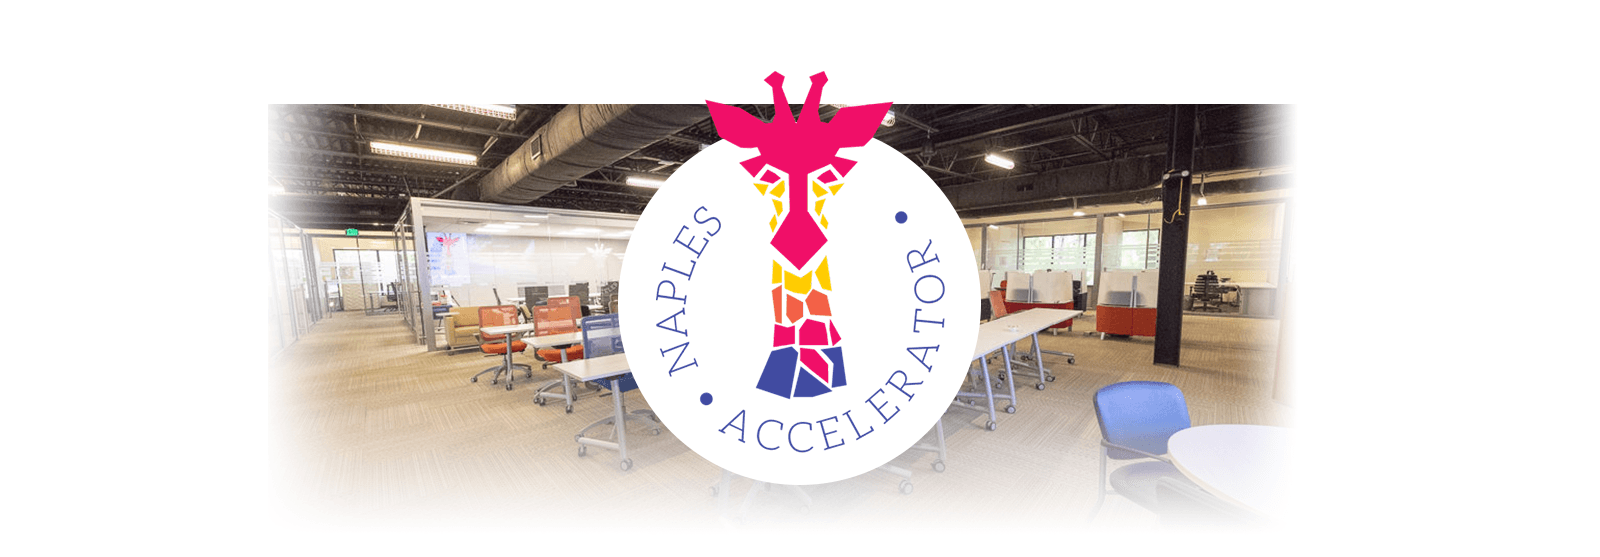 Naples Accelerator Logo and Room